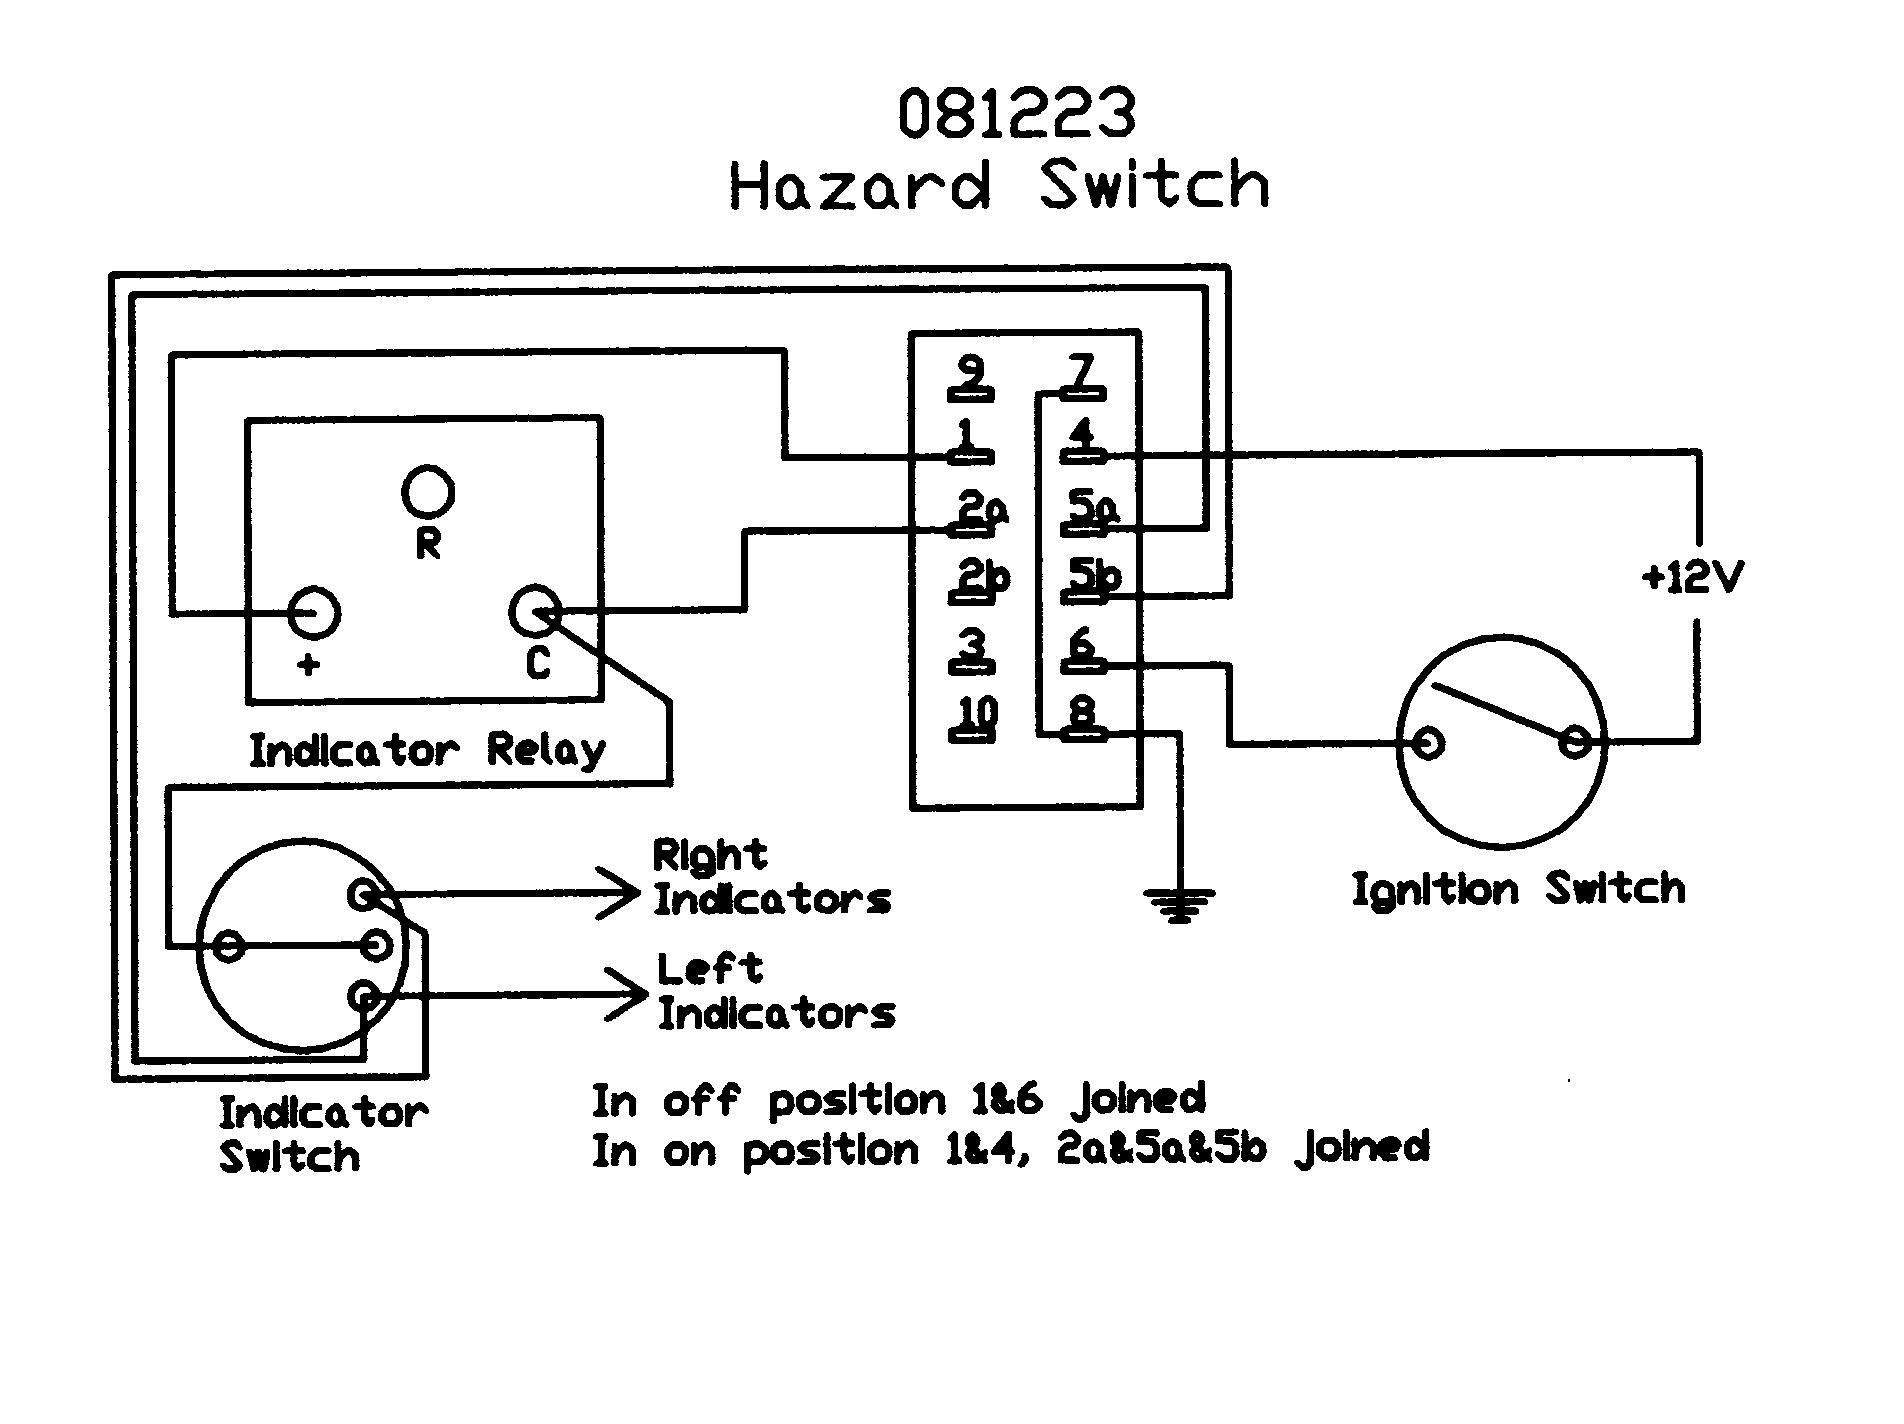 081223_wiring_diagram_1 rocker hazard switch lucas indicator switch wiring diagram at gsmportal.co